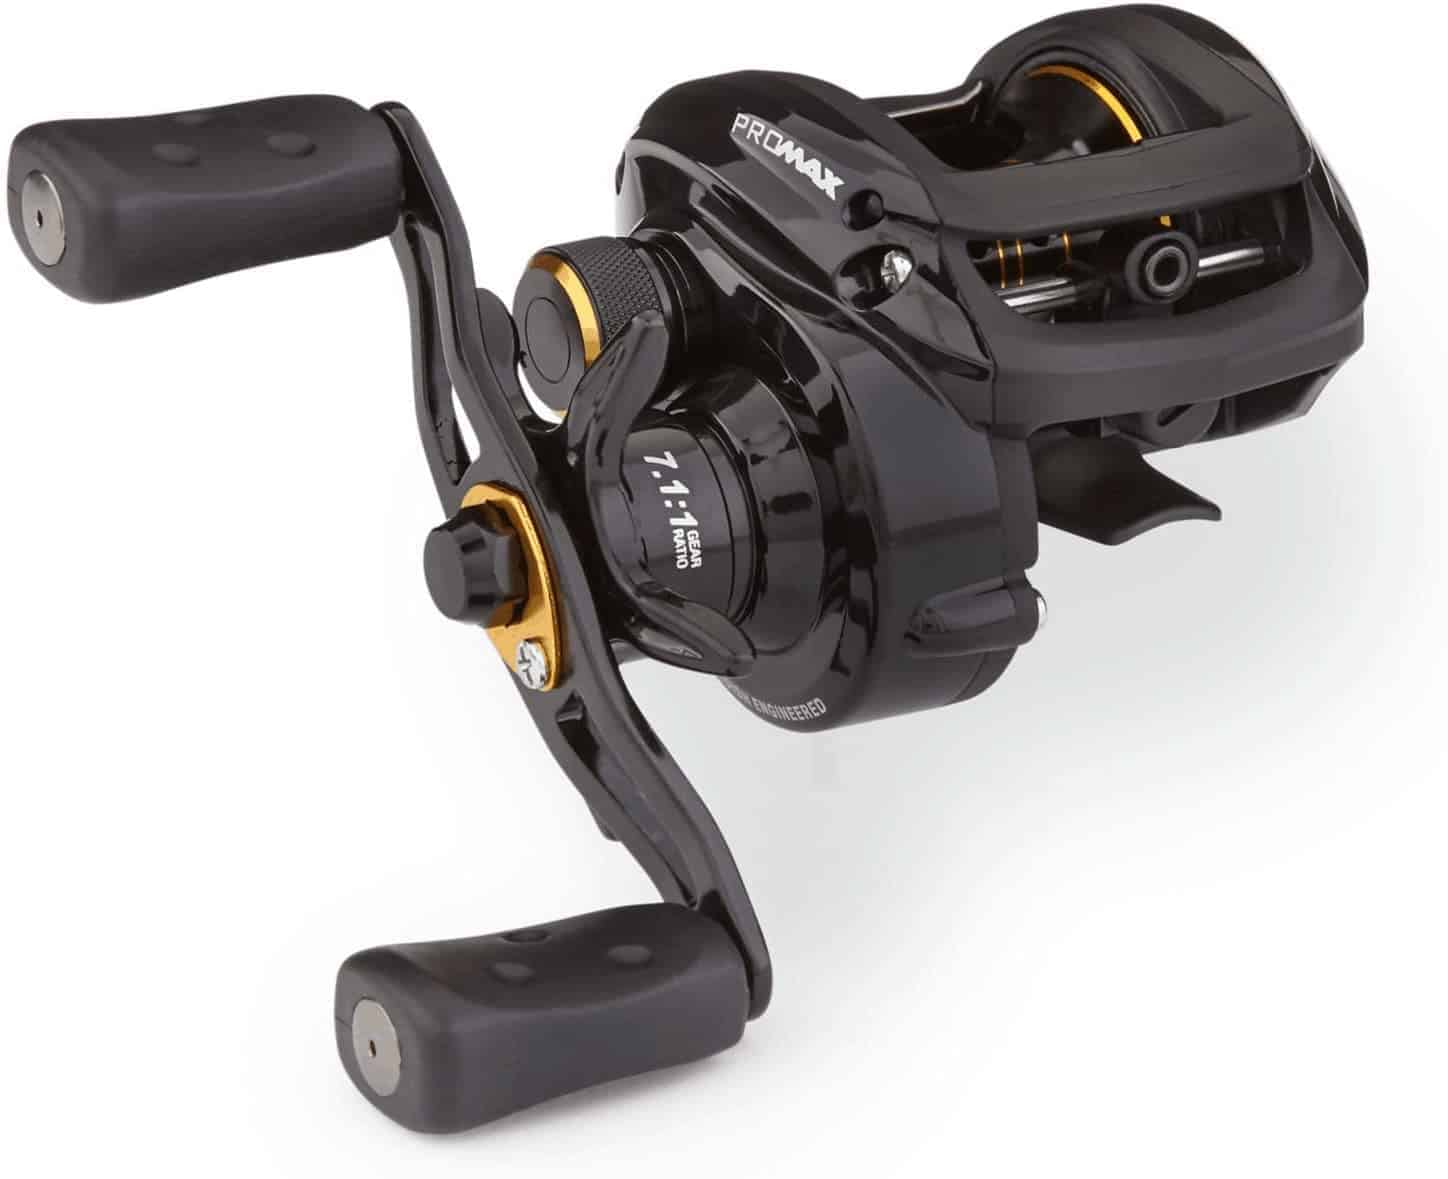 About the Abu Garcia Pro Max